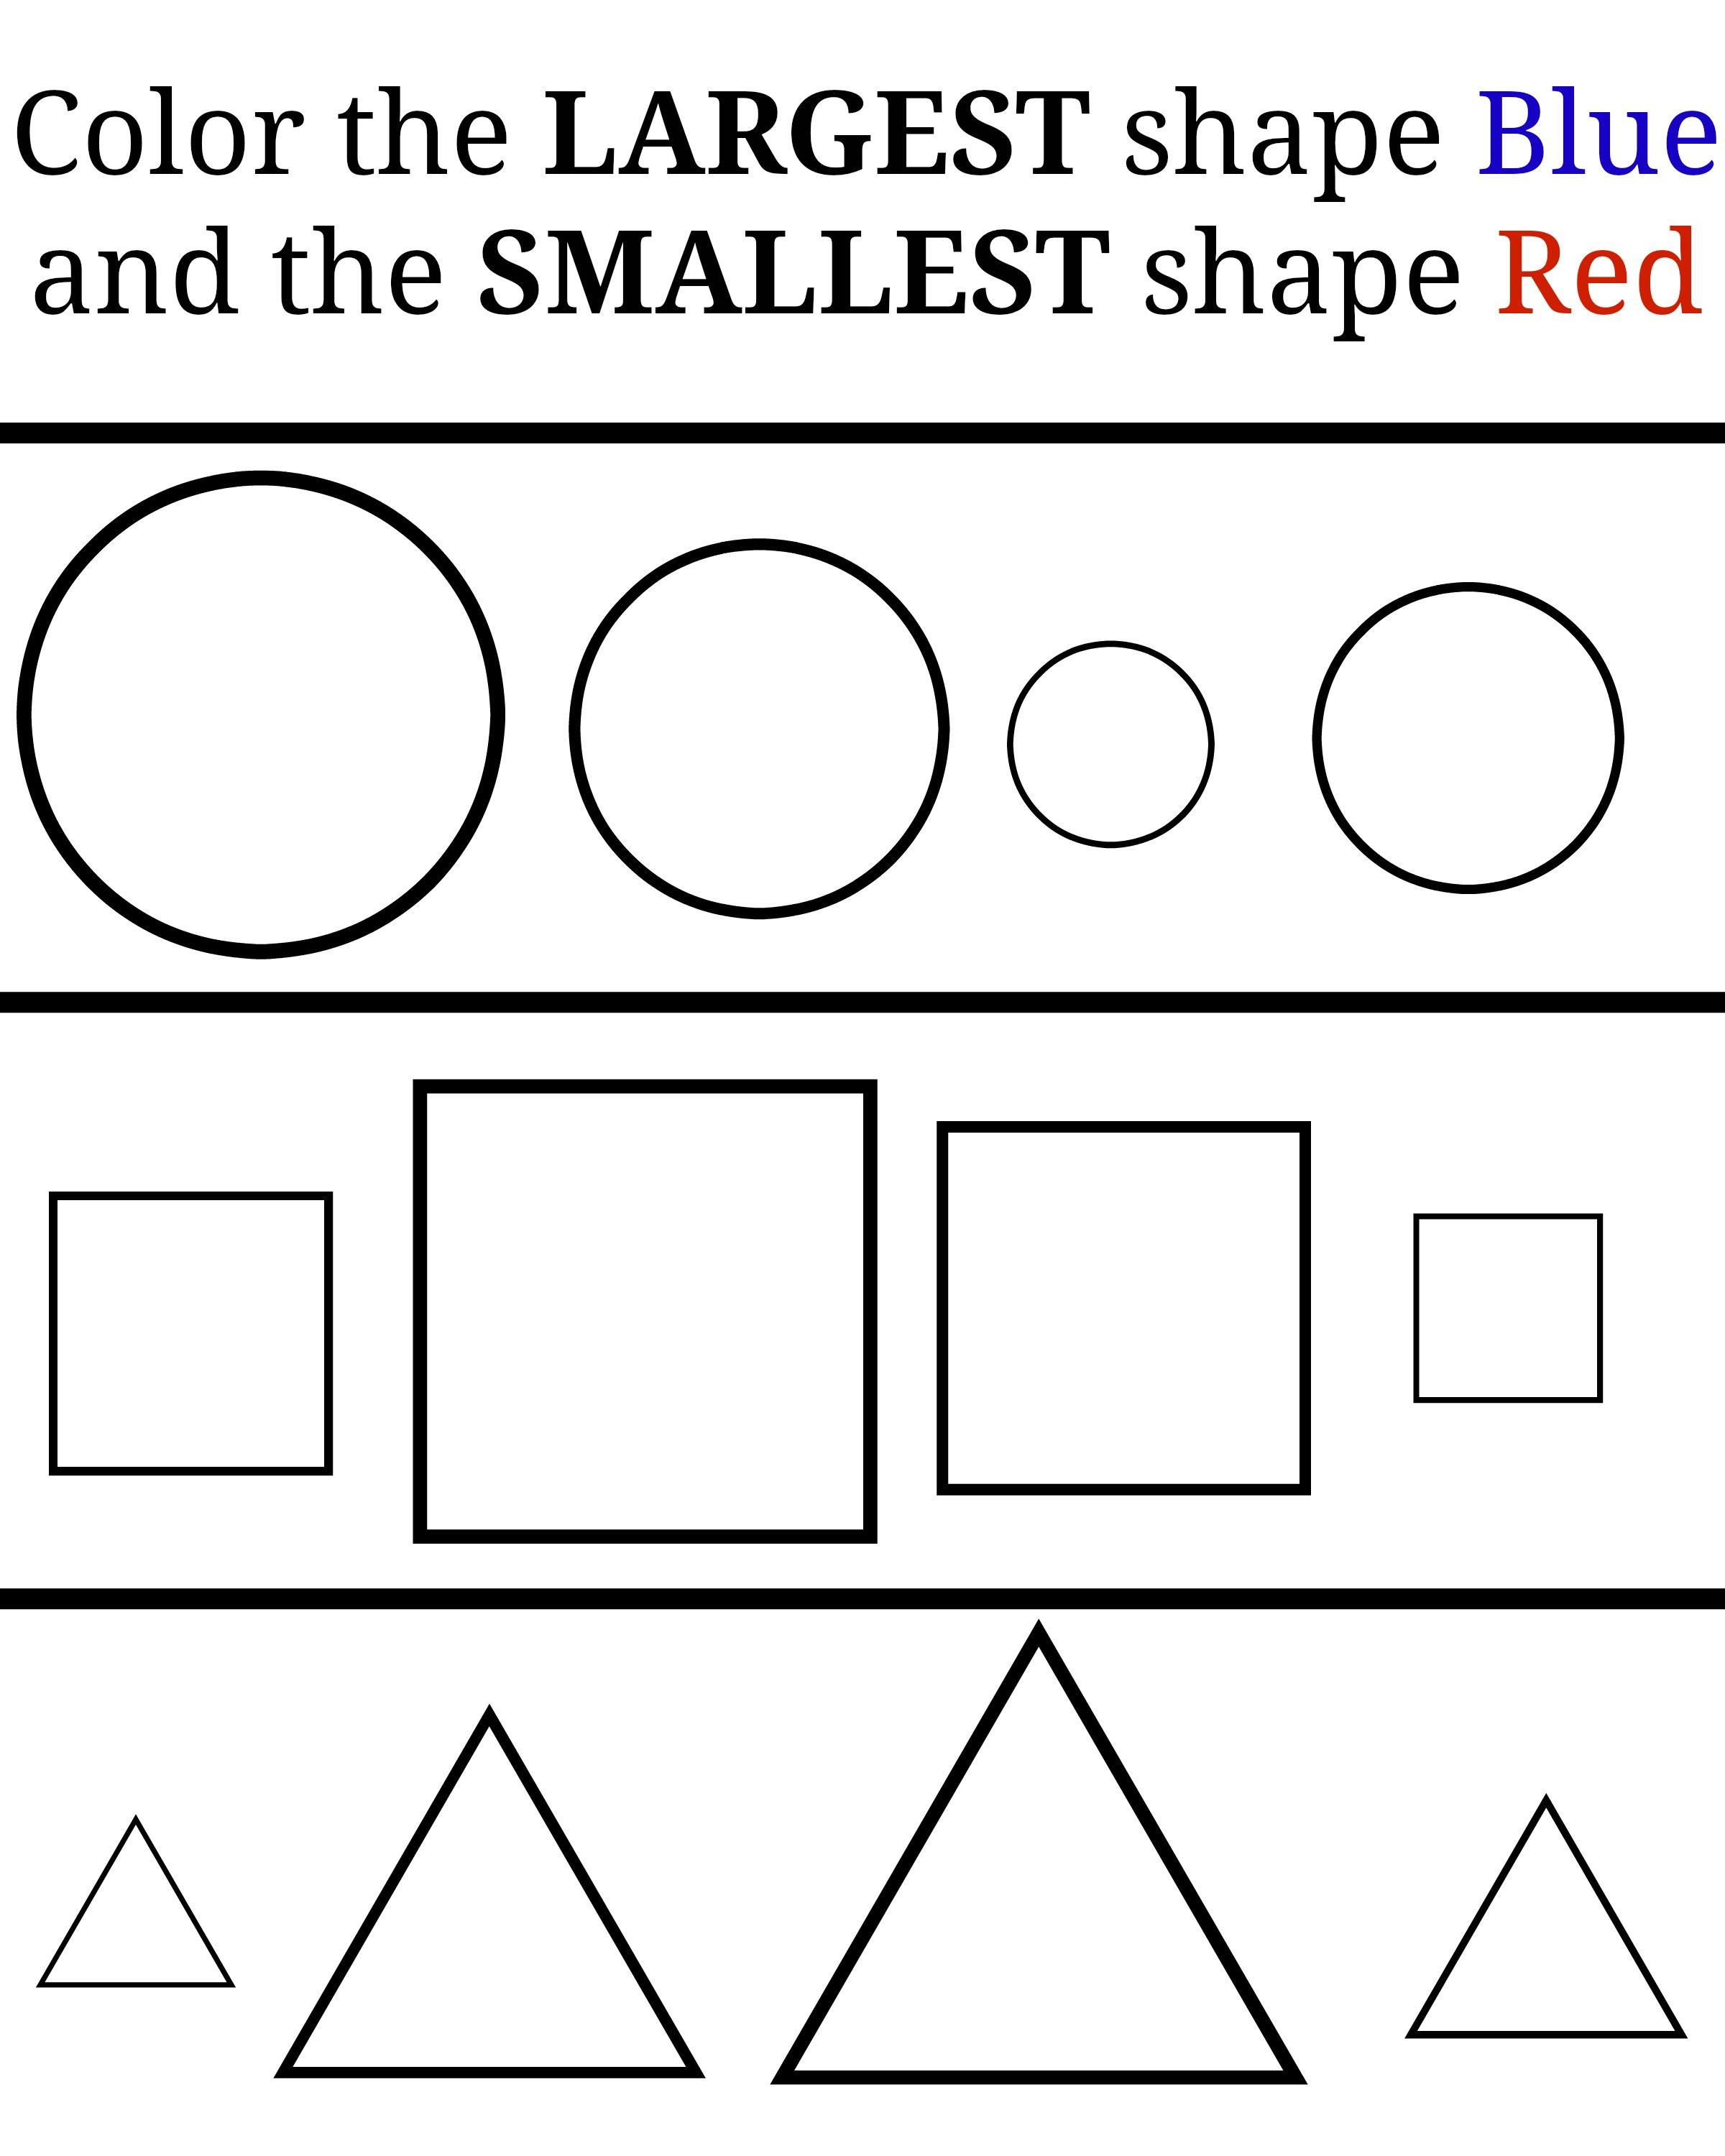 Worksheets Kindergarten Readiness Worksheets color the shapes learning large and small pre k shape worksheets great free printable games also ideas for books activities a video large